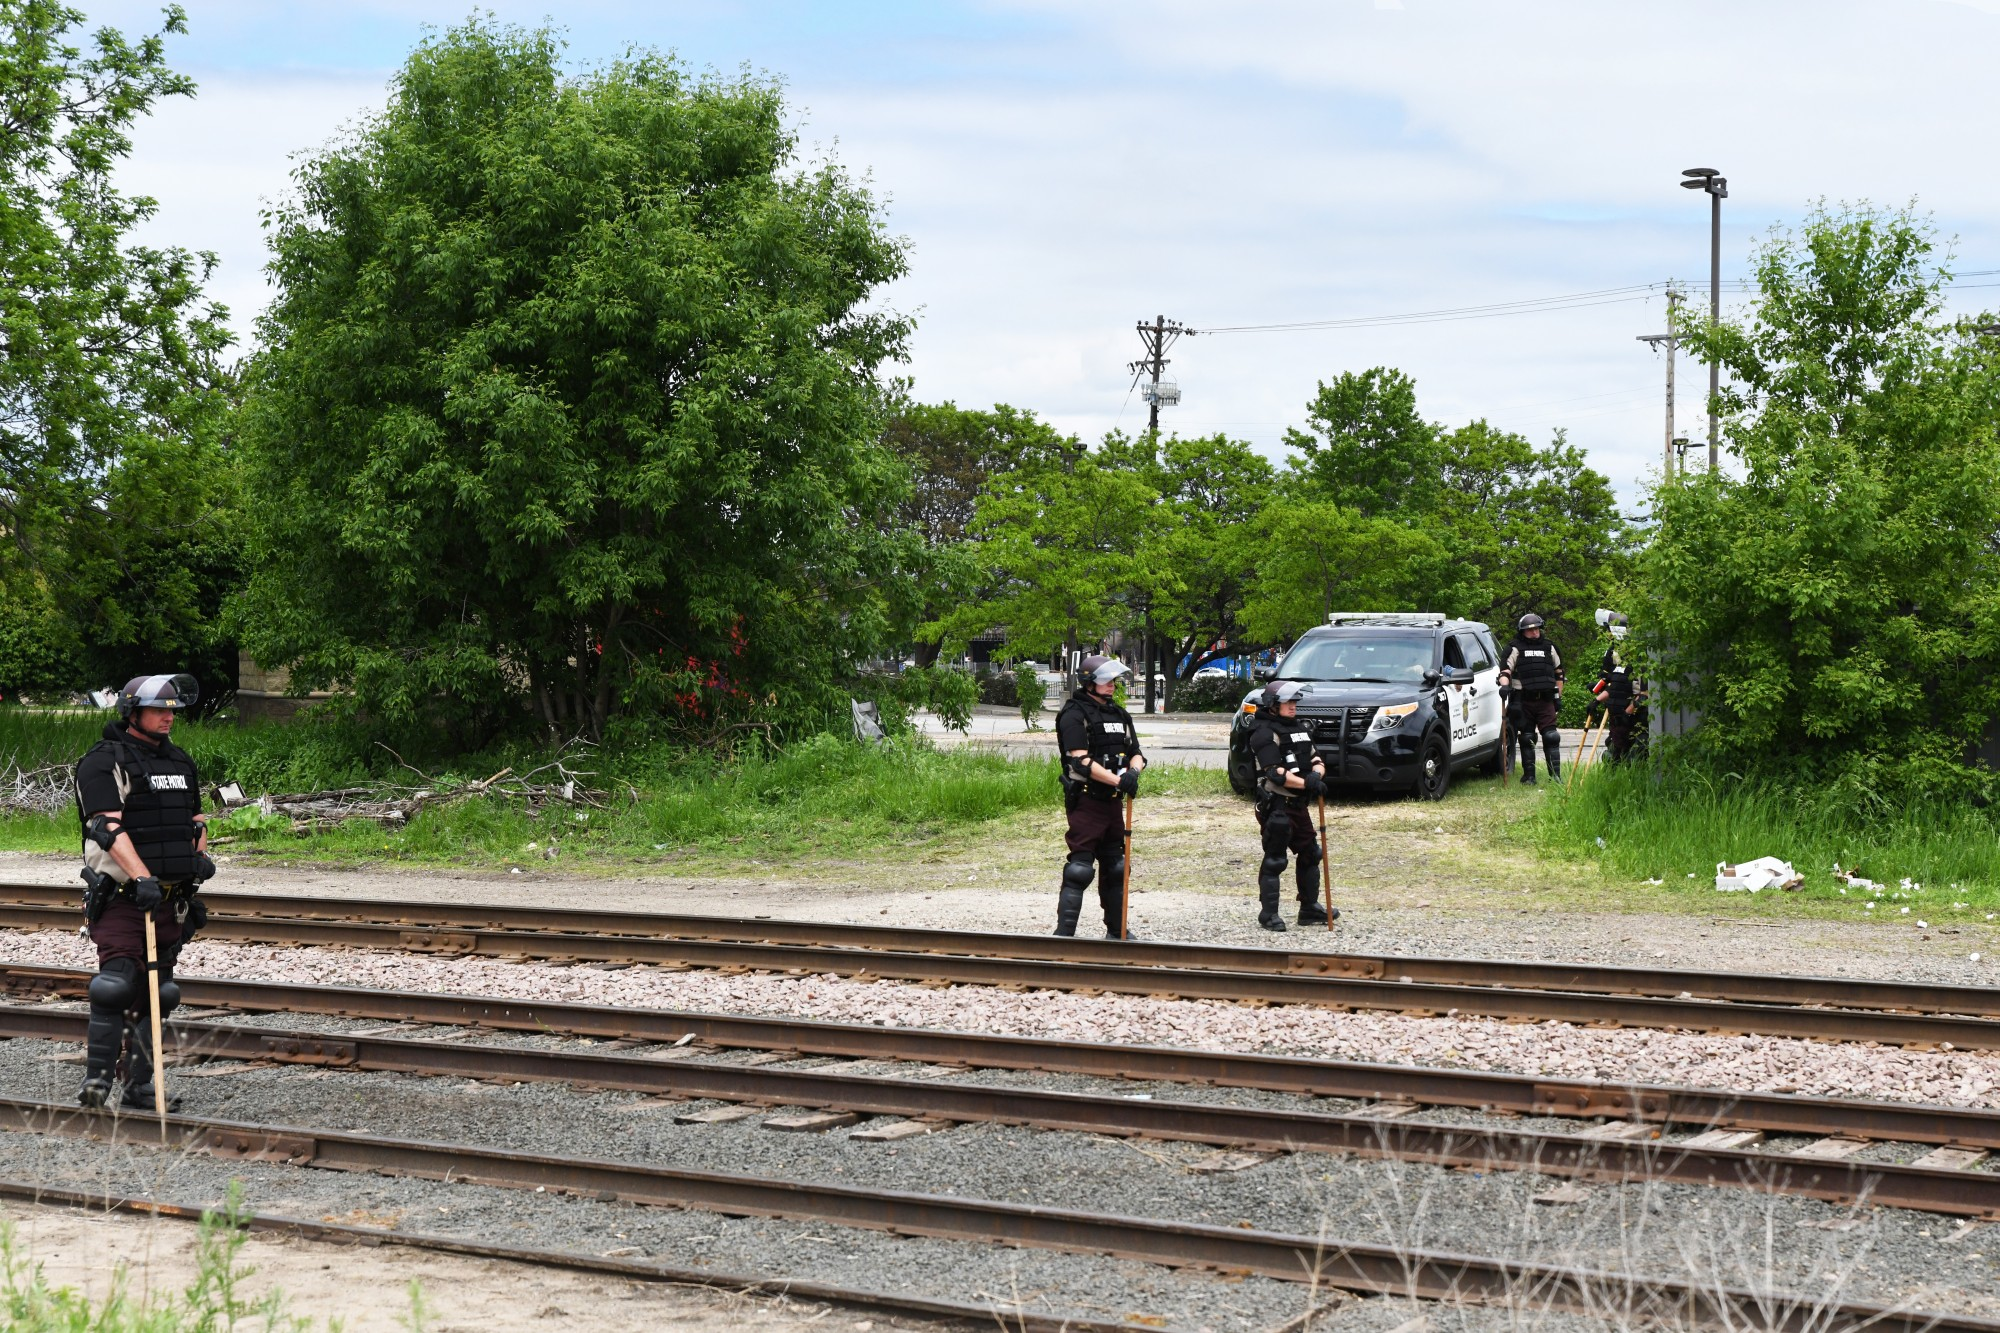 State troopers guard the railroad tracks that demonstrators crossed Tuesday to reach the Minneapolis 3rd Police Precinct on Friday, May 29.